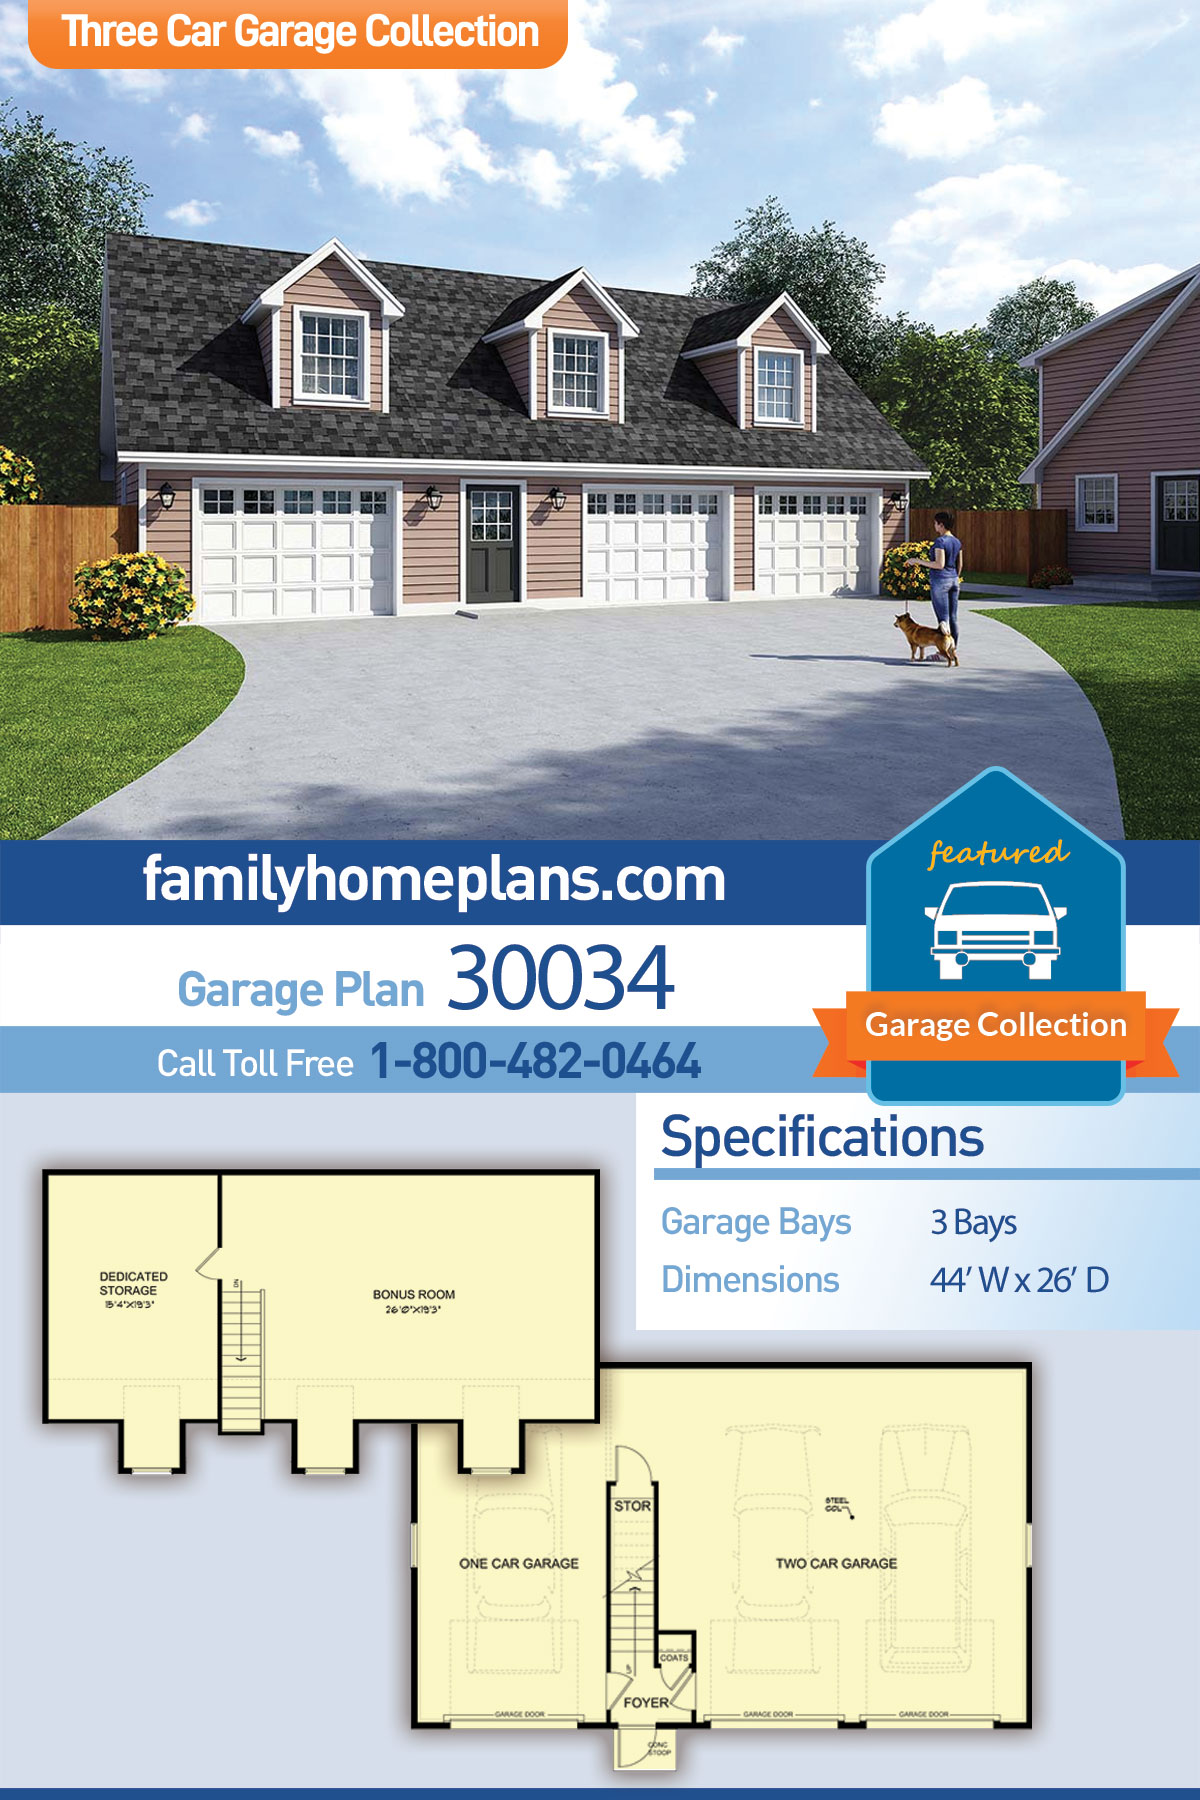 Cape Cod, Saltbox, Traditional Garage-Living Plan 30034, 3 Car Garage